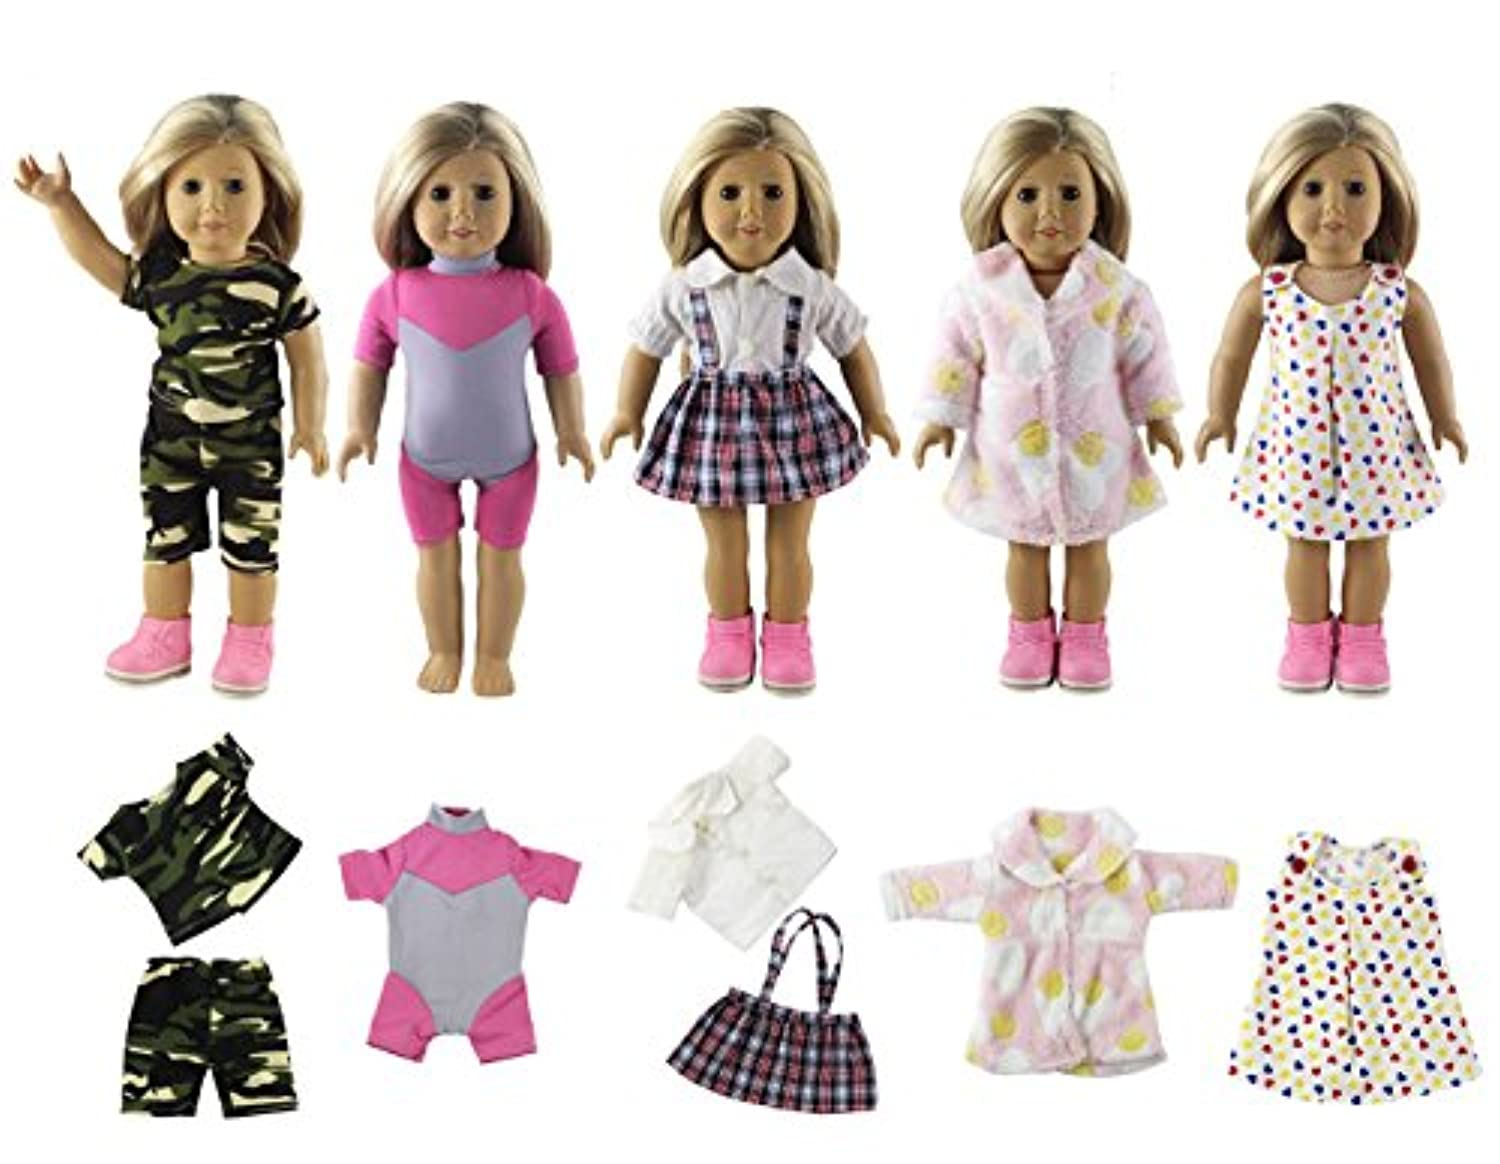 HongShun New 5 Set Fashion Different Style Clothes for 46cm American Girl Doll